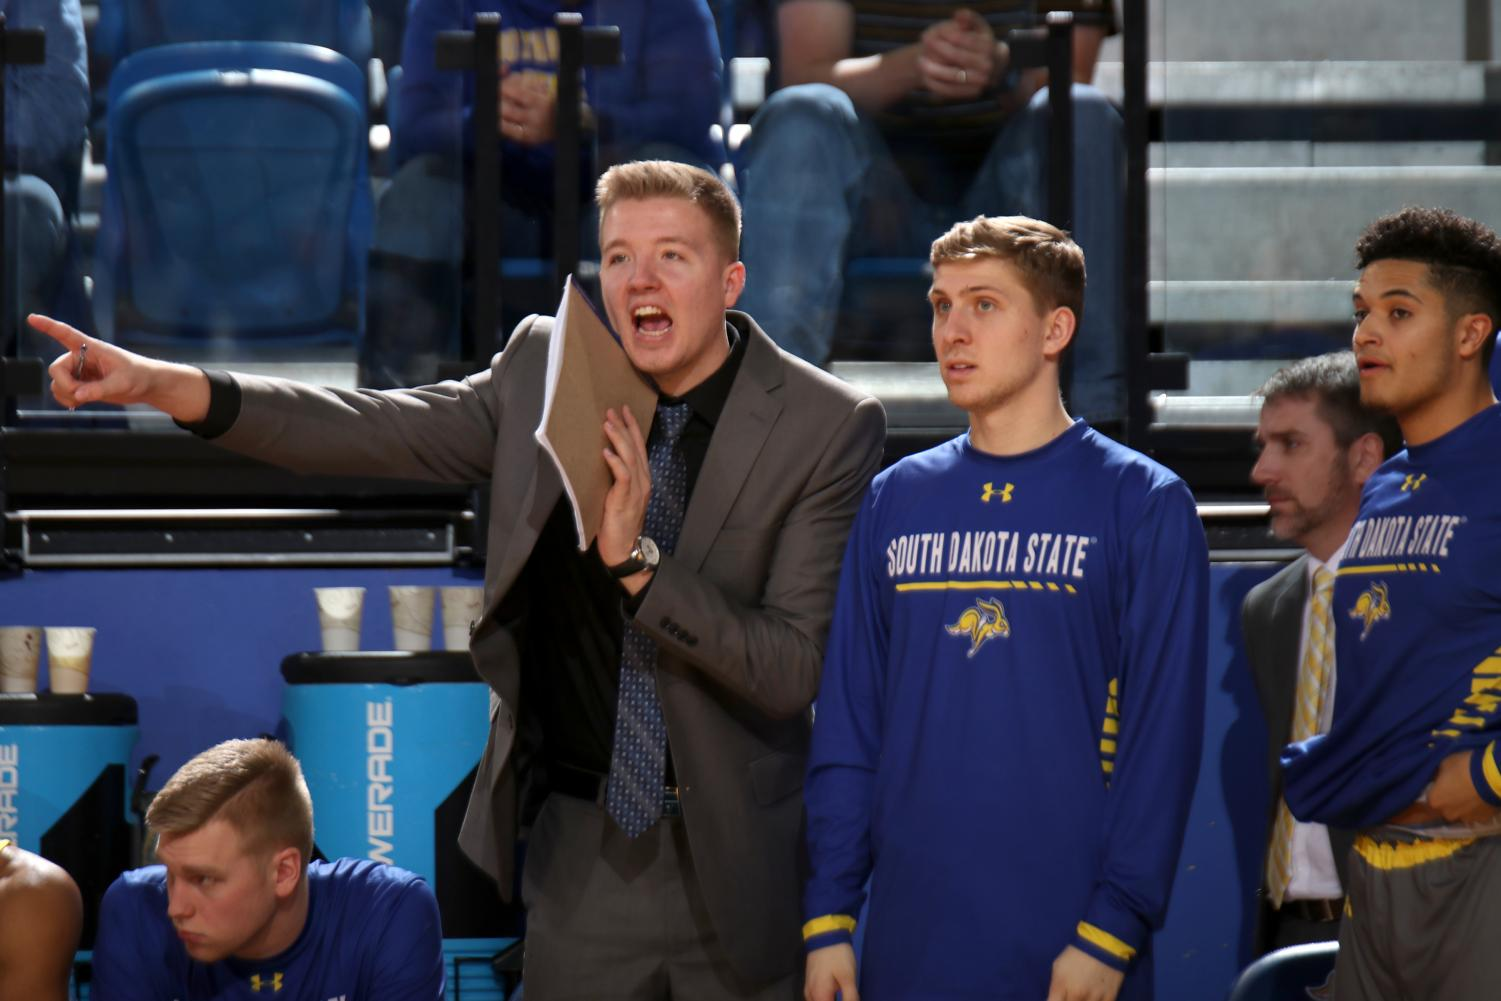 Graduate assistant coach Reed Tellinghuisen yells to the players on the court next to Beau Brown during the SDSU vs. Denver men's basketball game Thursday, Jan. 10 at Frost Arena in Brookings, S.D.